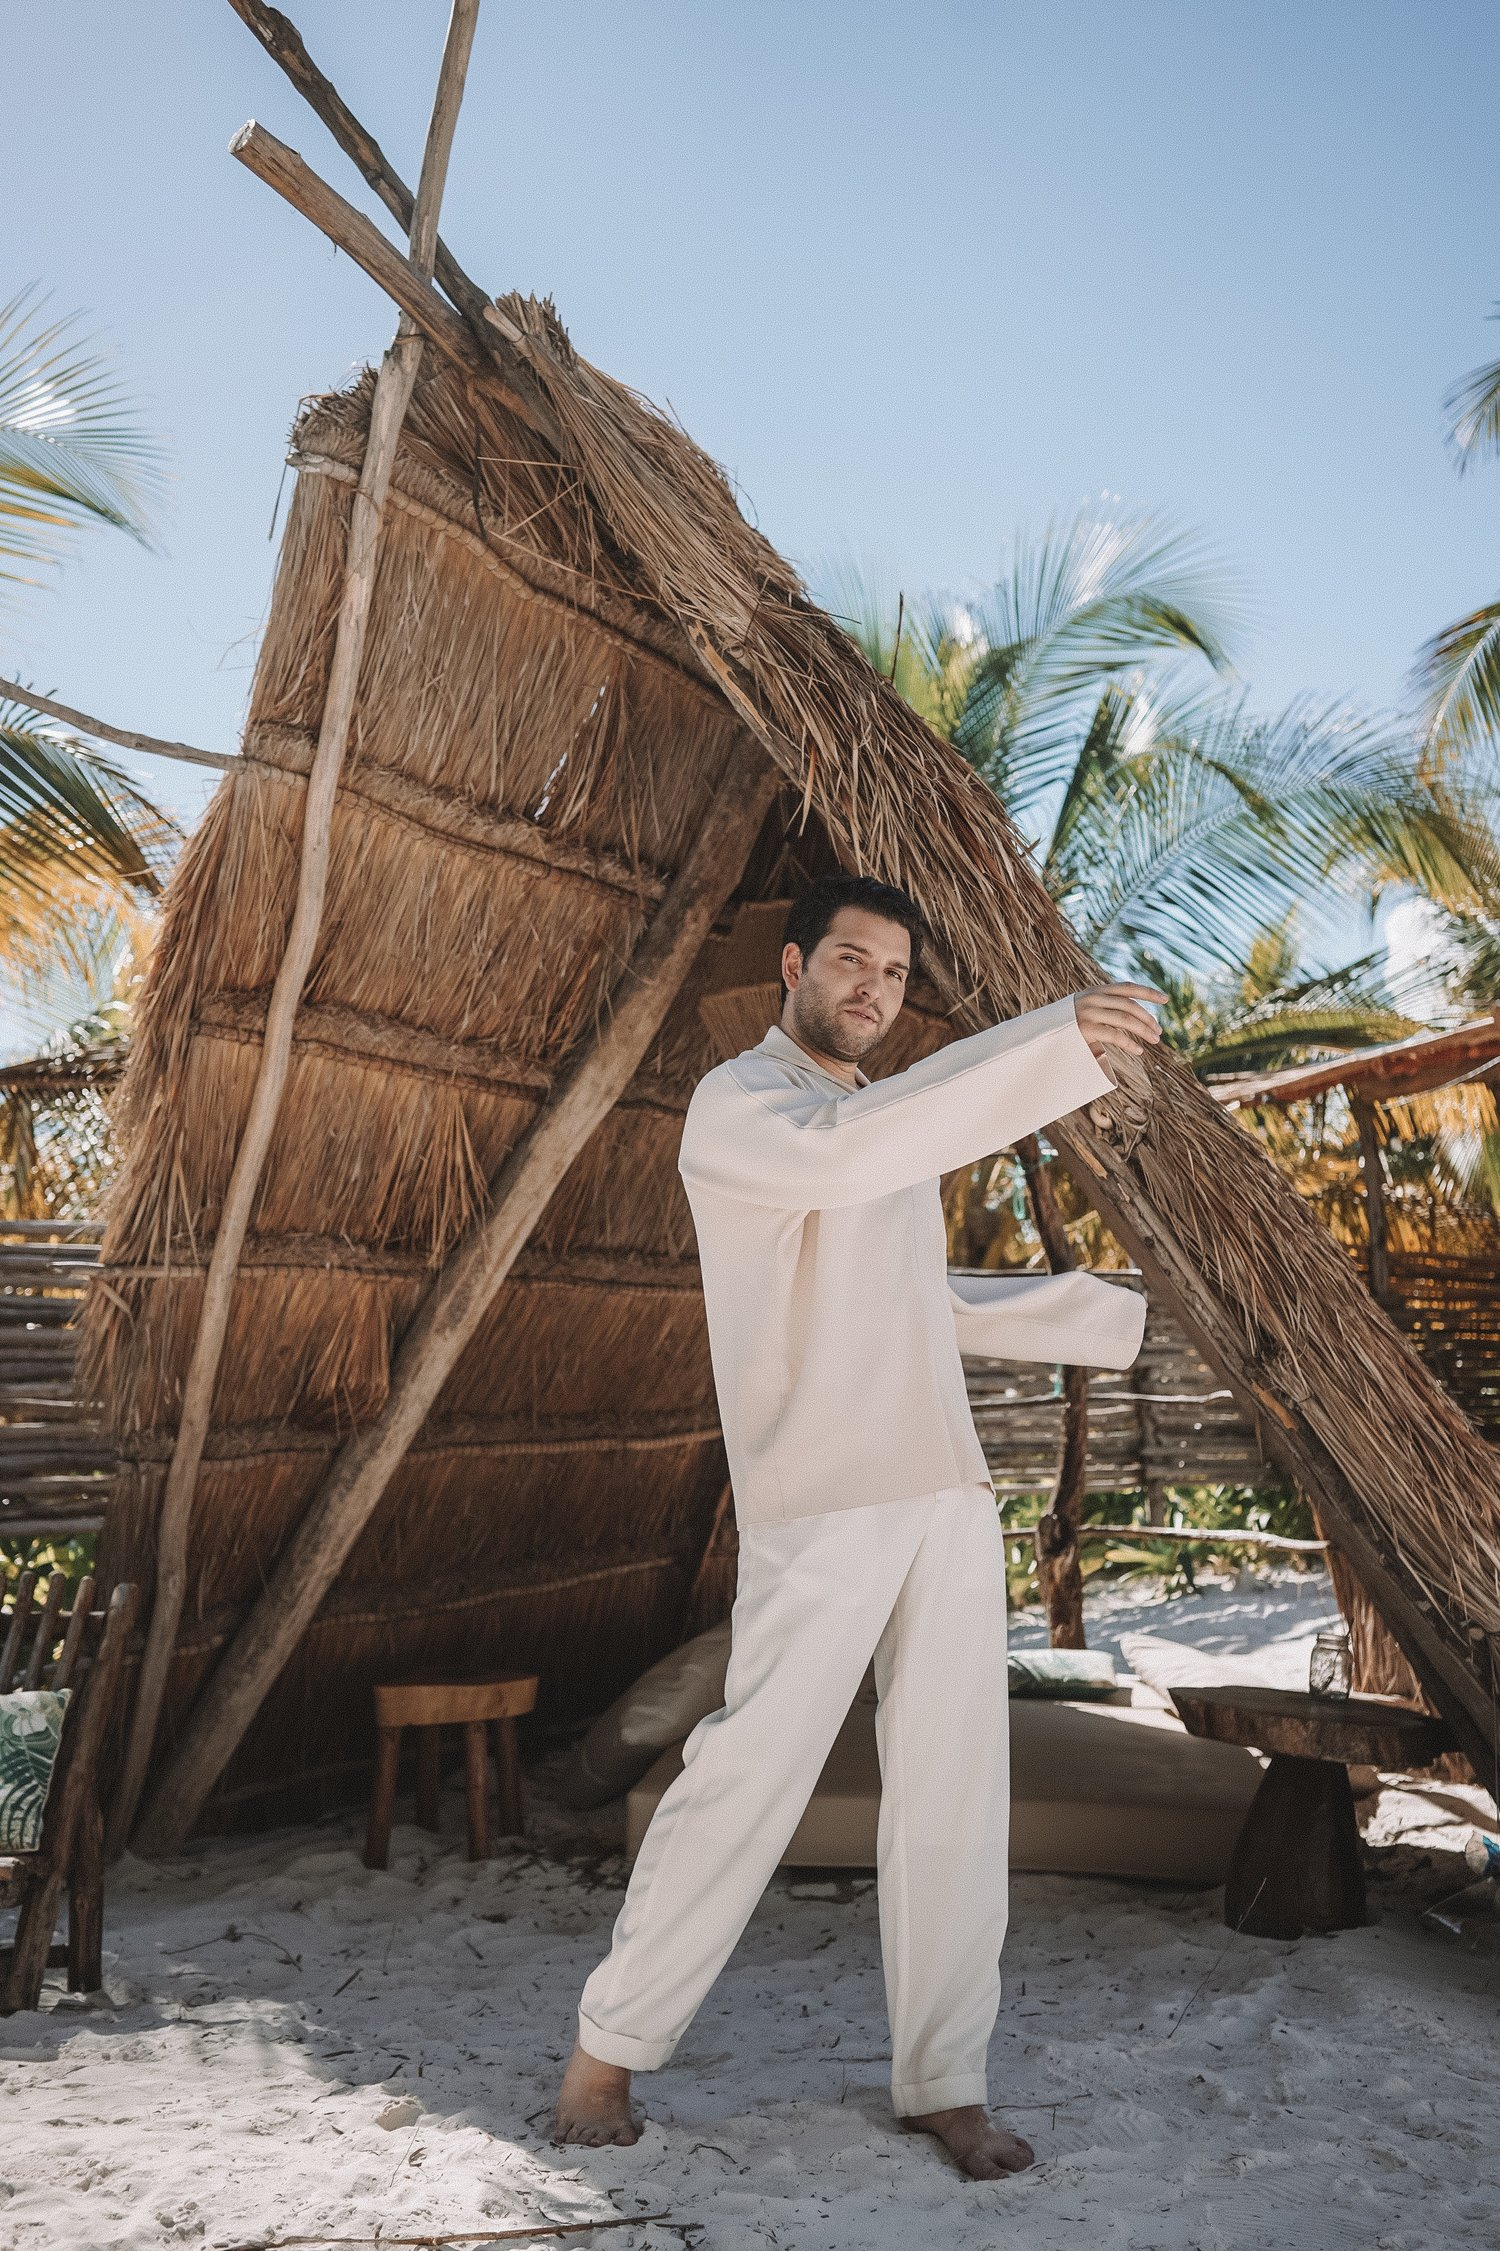 http://www.downtowndava.com/blog/2019/1/17/wellness-concierge-tulum